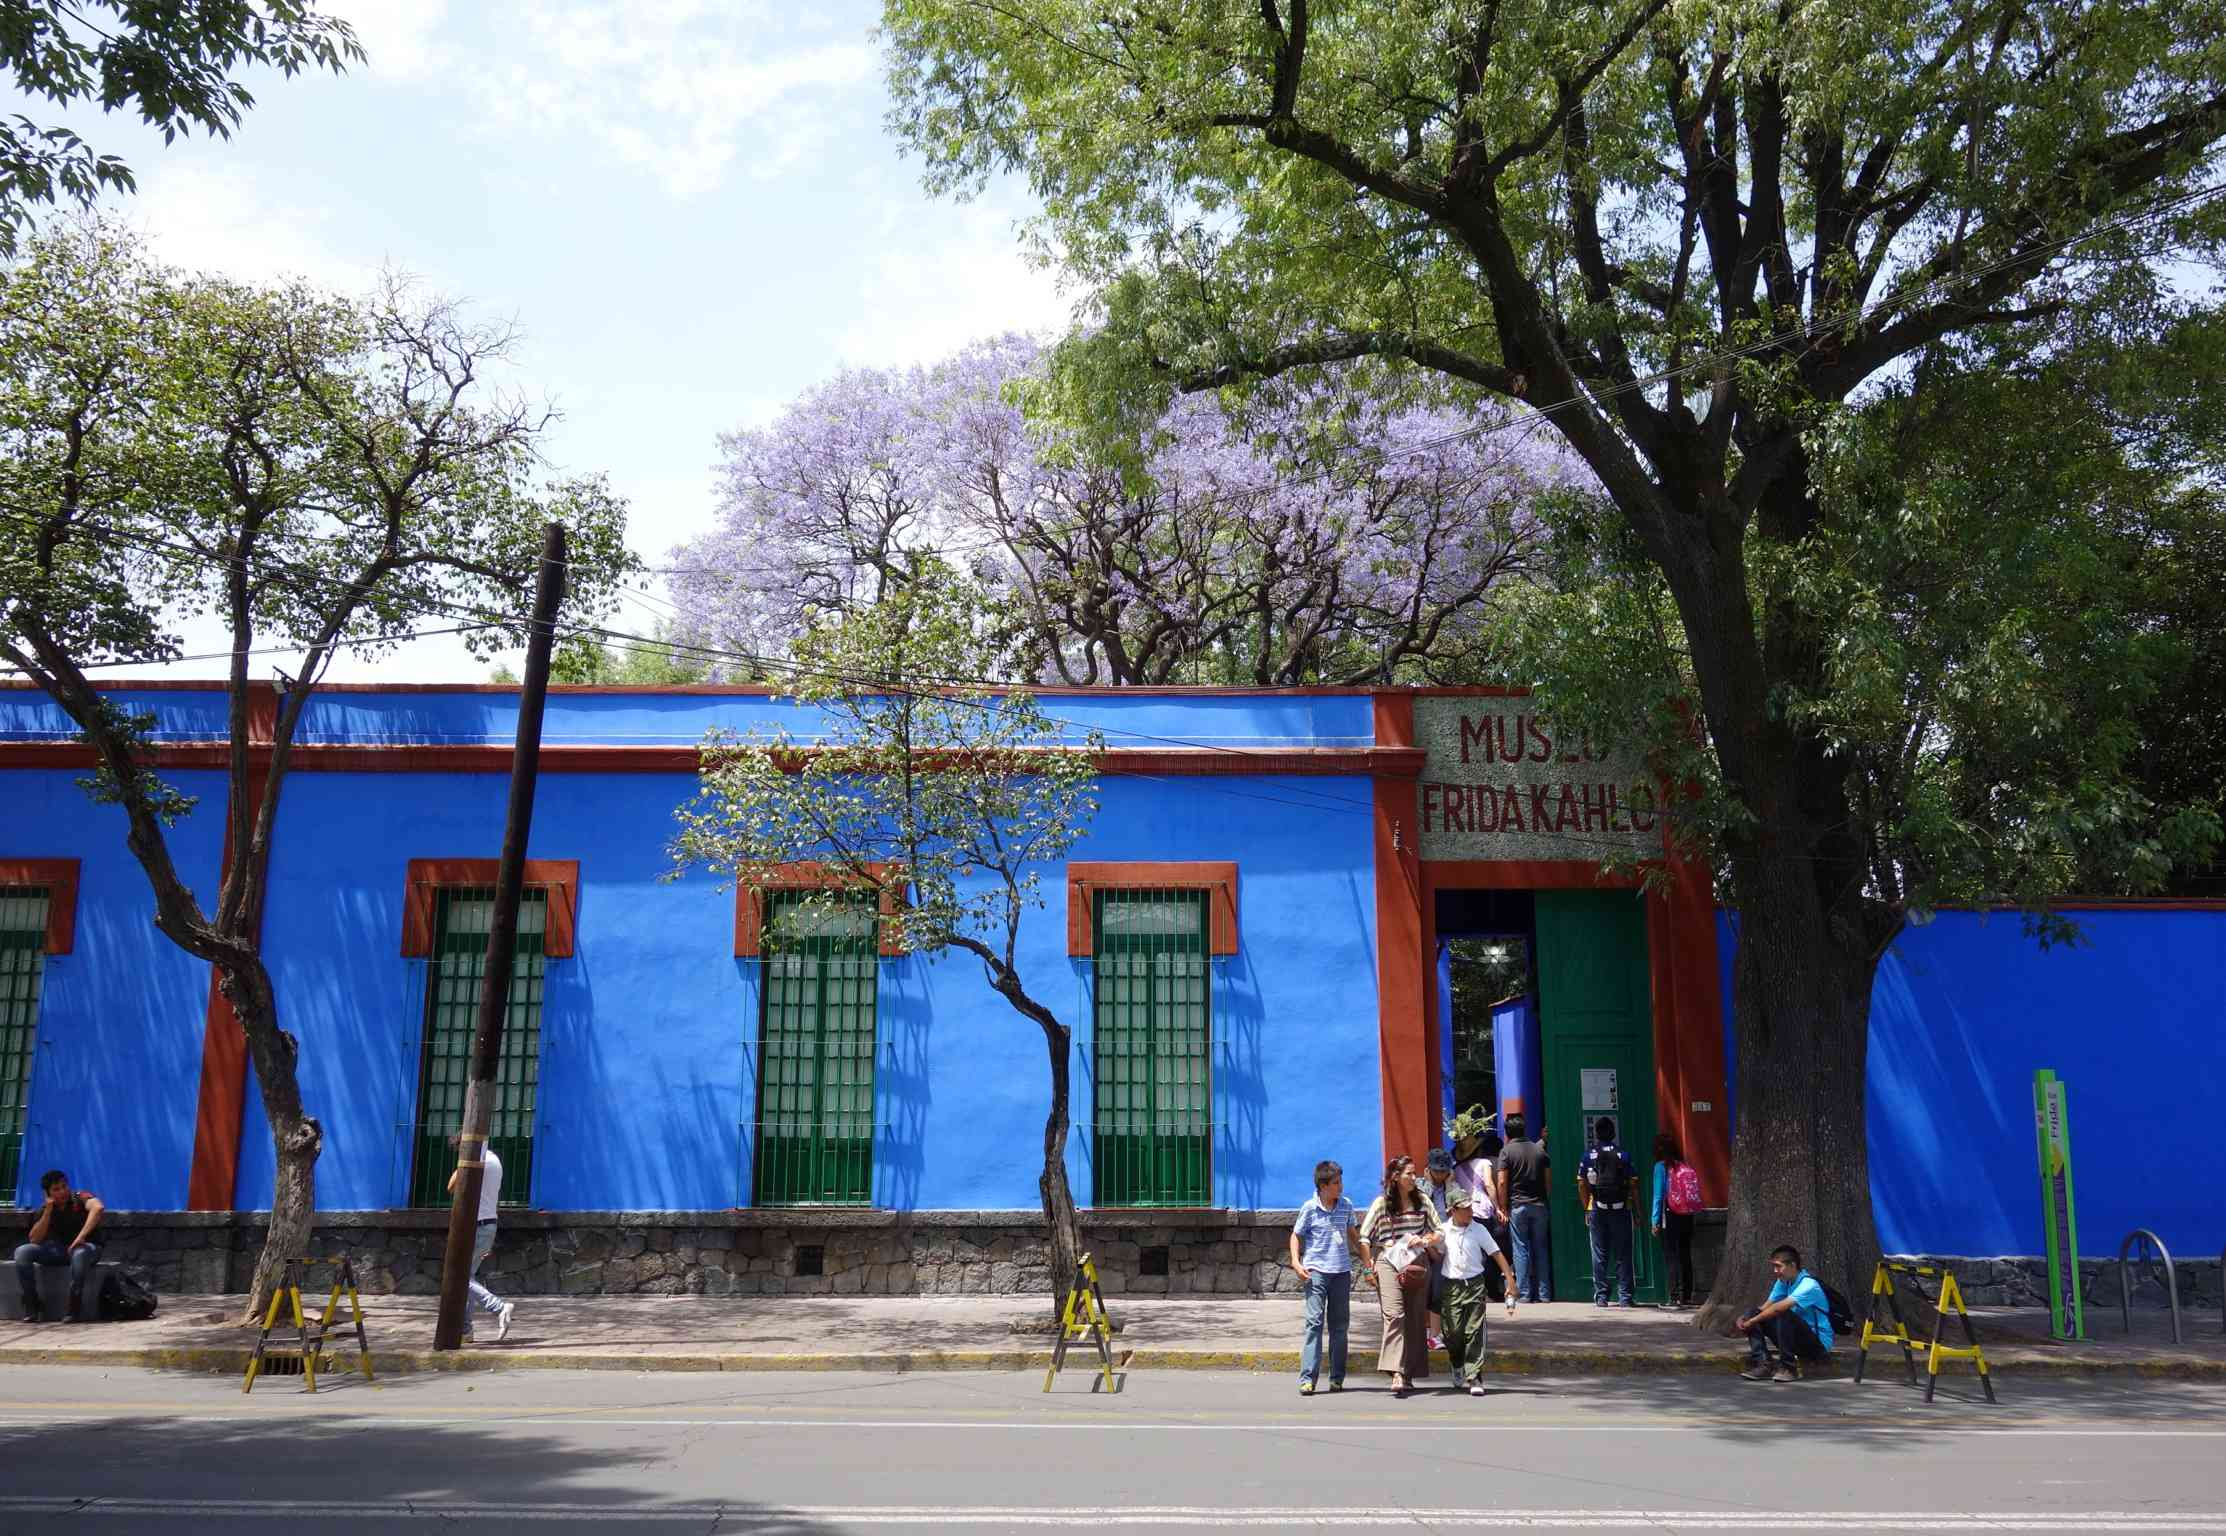 Frida Kahlo Museum in Coyoacan